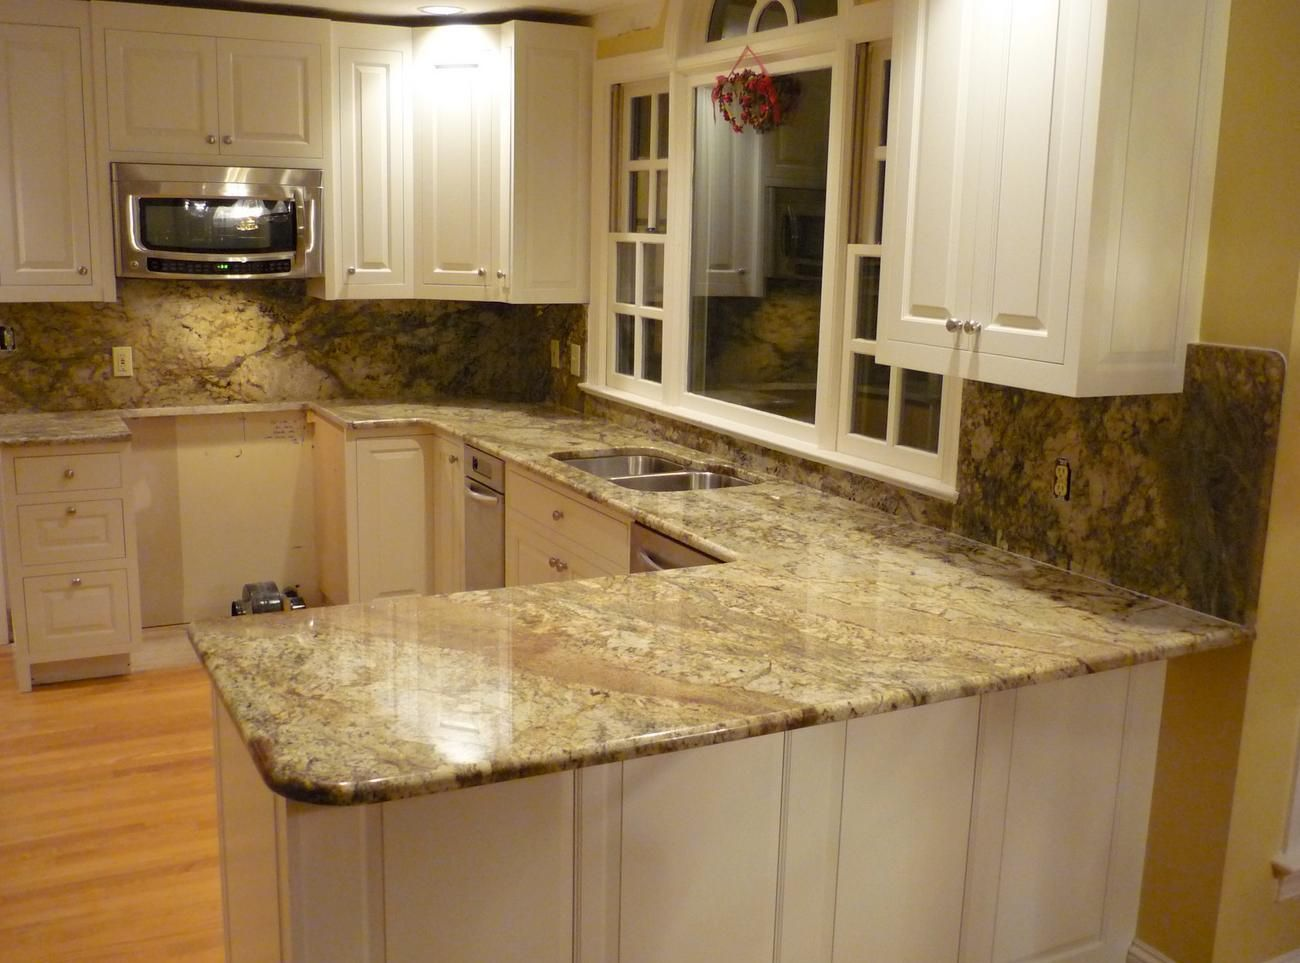 white countertops best gallery for ideas cabinets kitchens kitchen images countertop granite